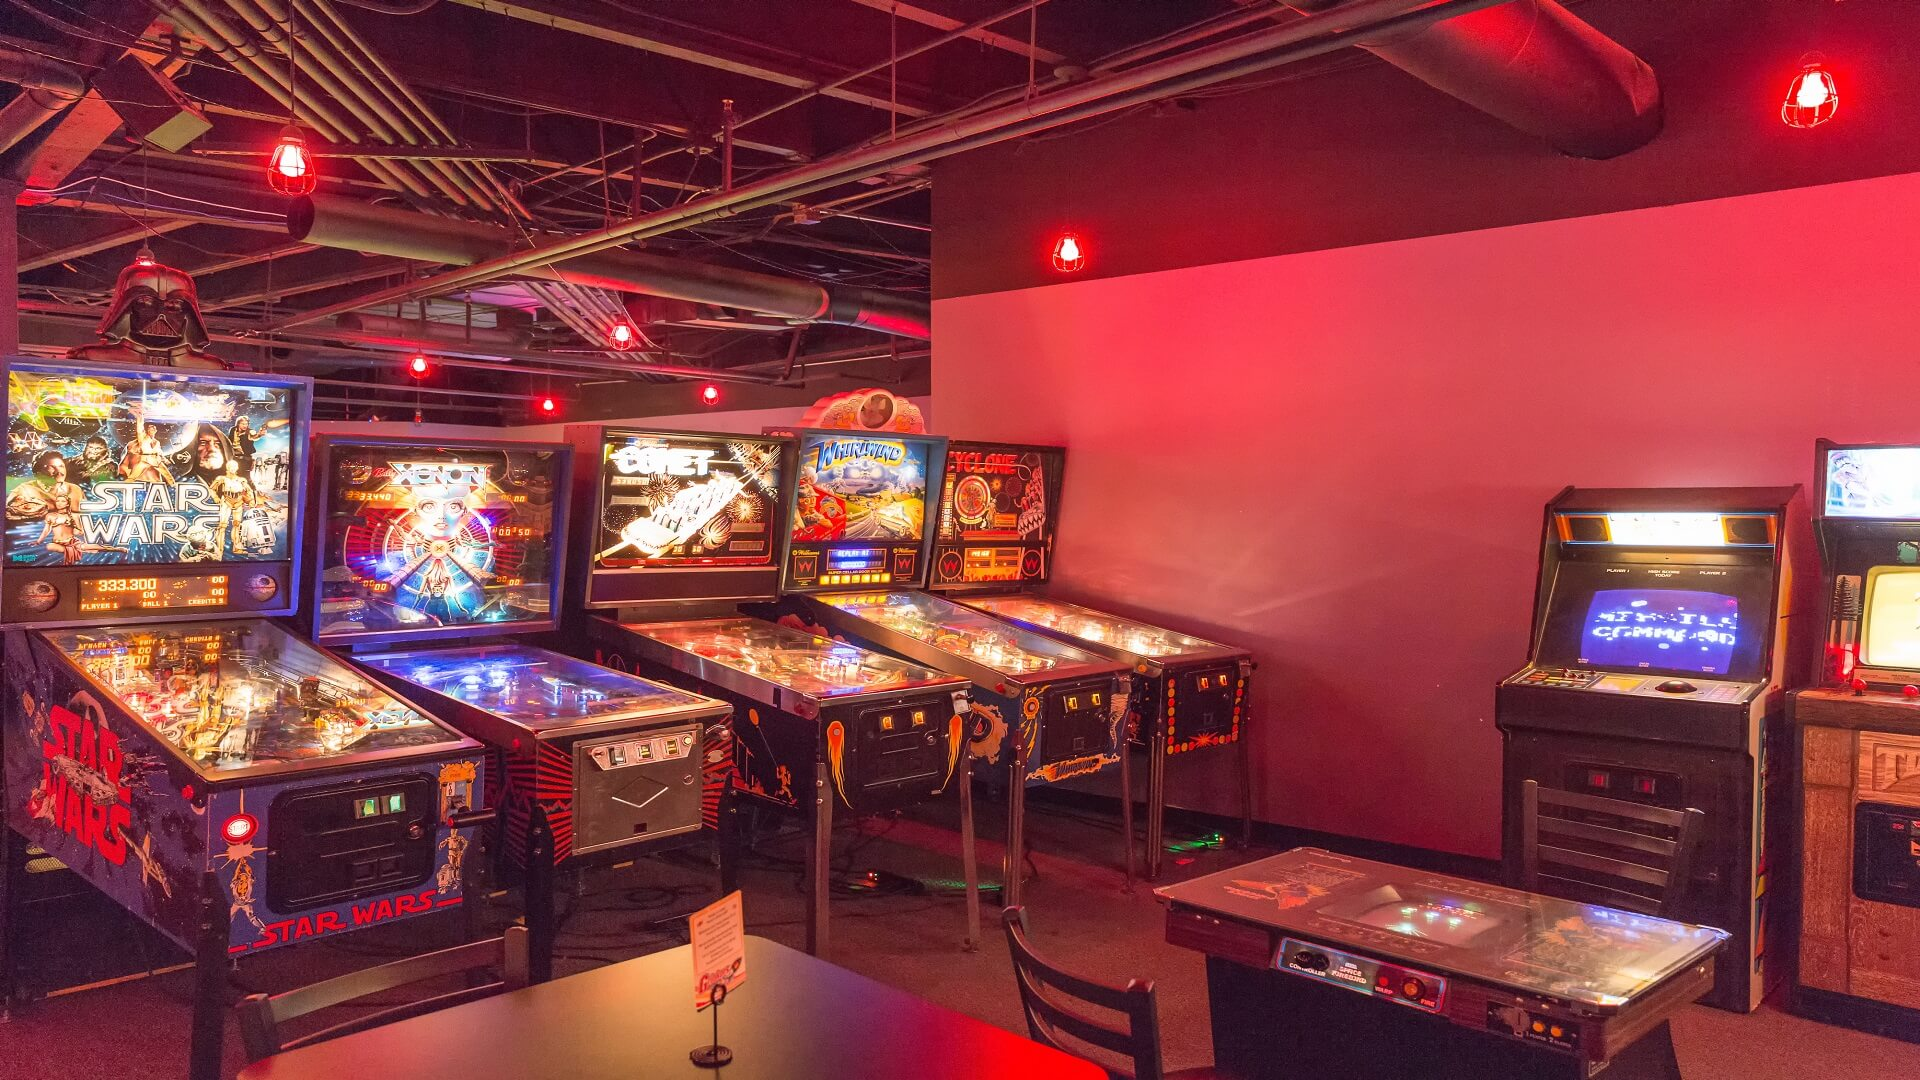 Pinball machines and Video Games in 1980s Arcade Grinkers in downtown